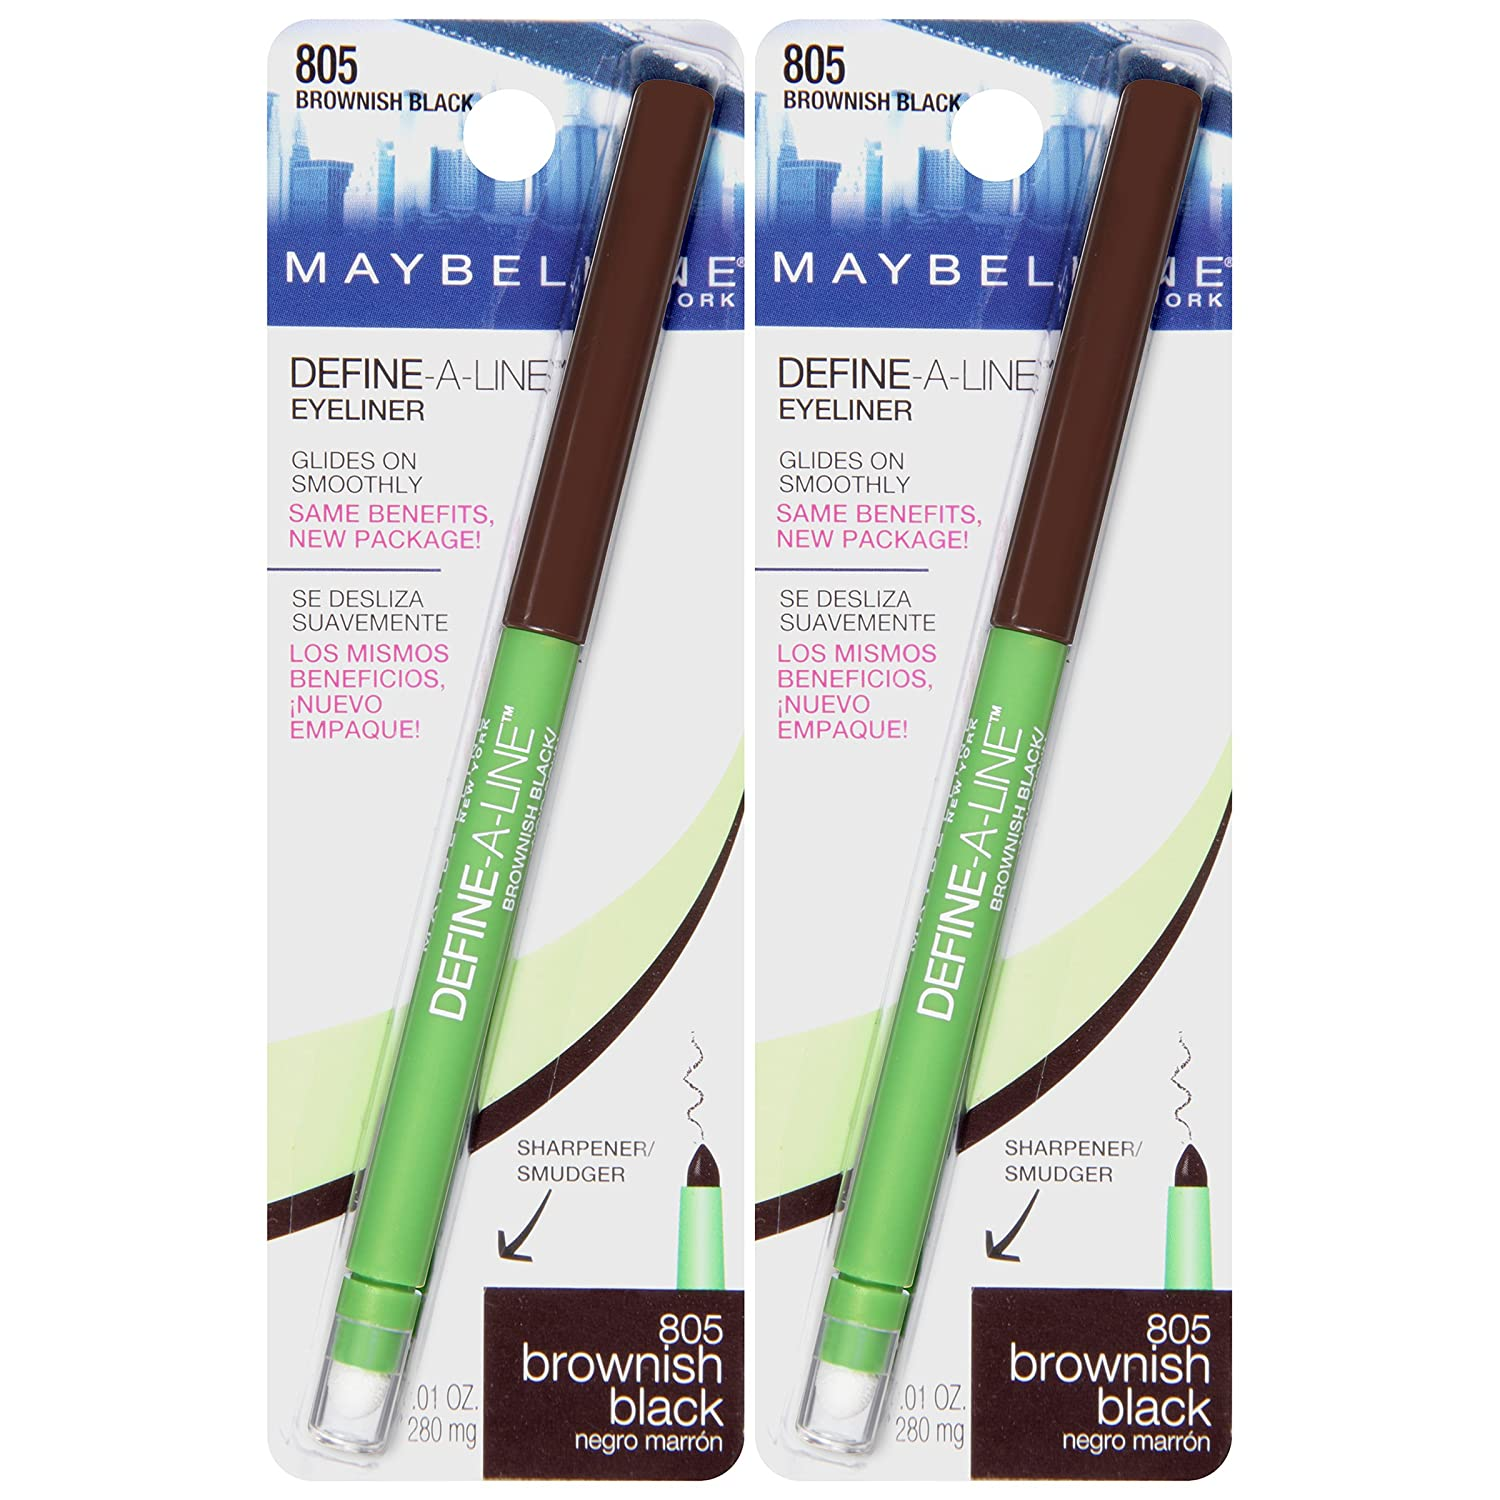 Maybelline New York Define-a-line Eyeliner Makeup, Brownish Black, 2 Count L' Oreal - Cosmetics 041554555646